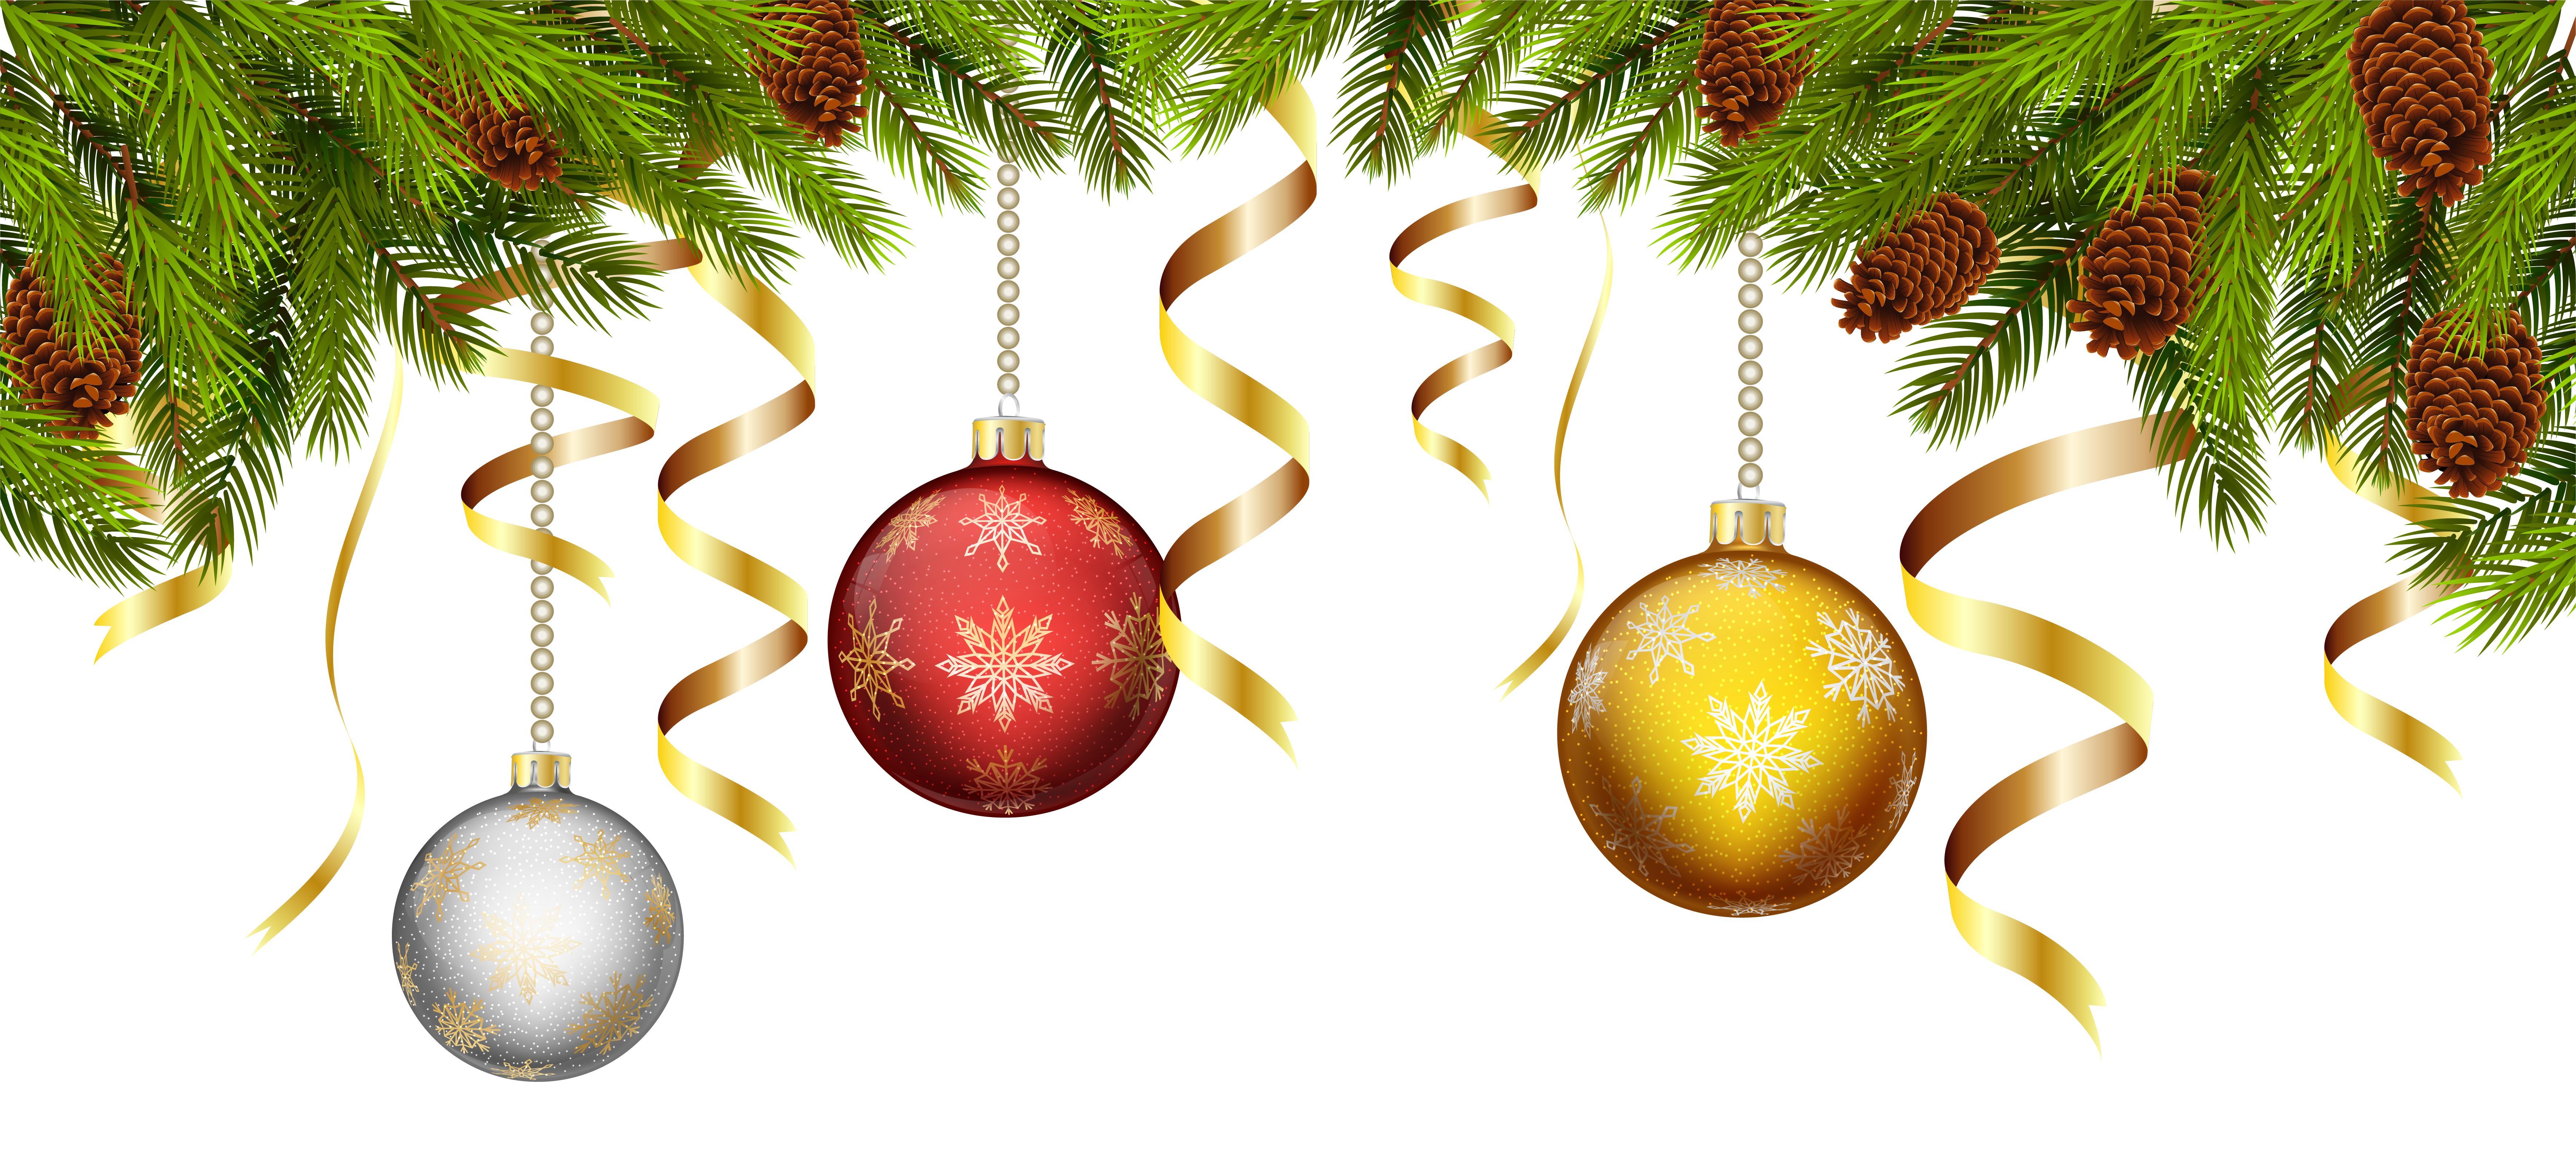 Christmas Balls With Pine Branch Decoration PNG Clip Art Image